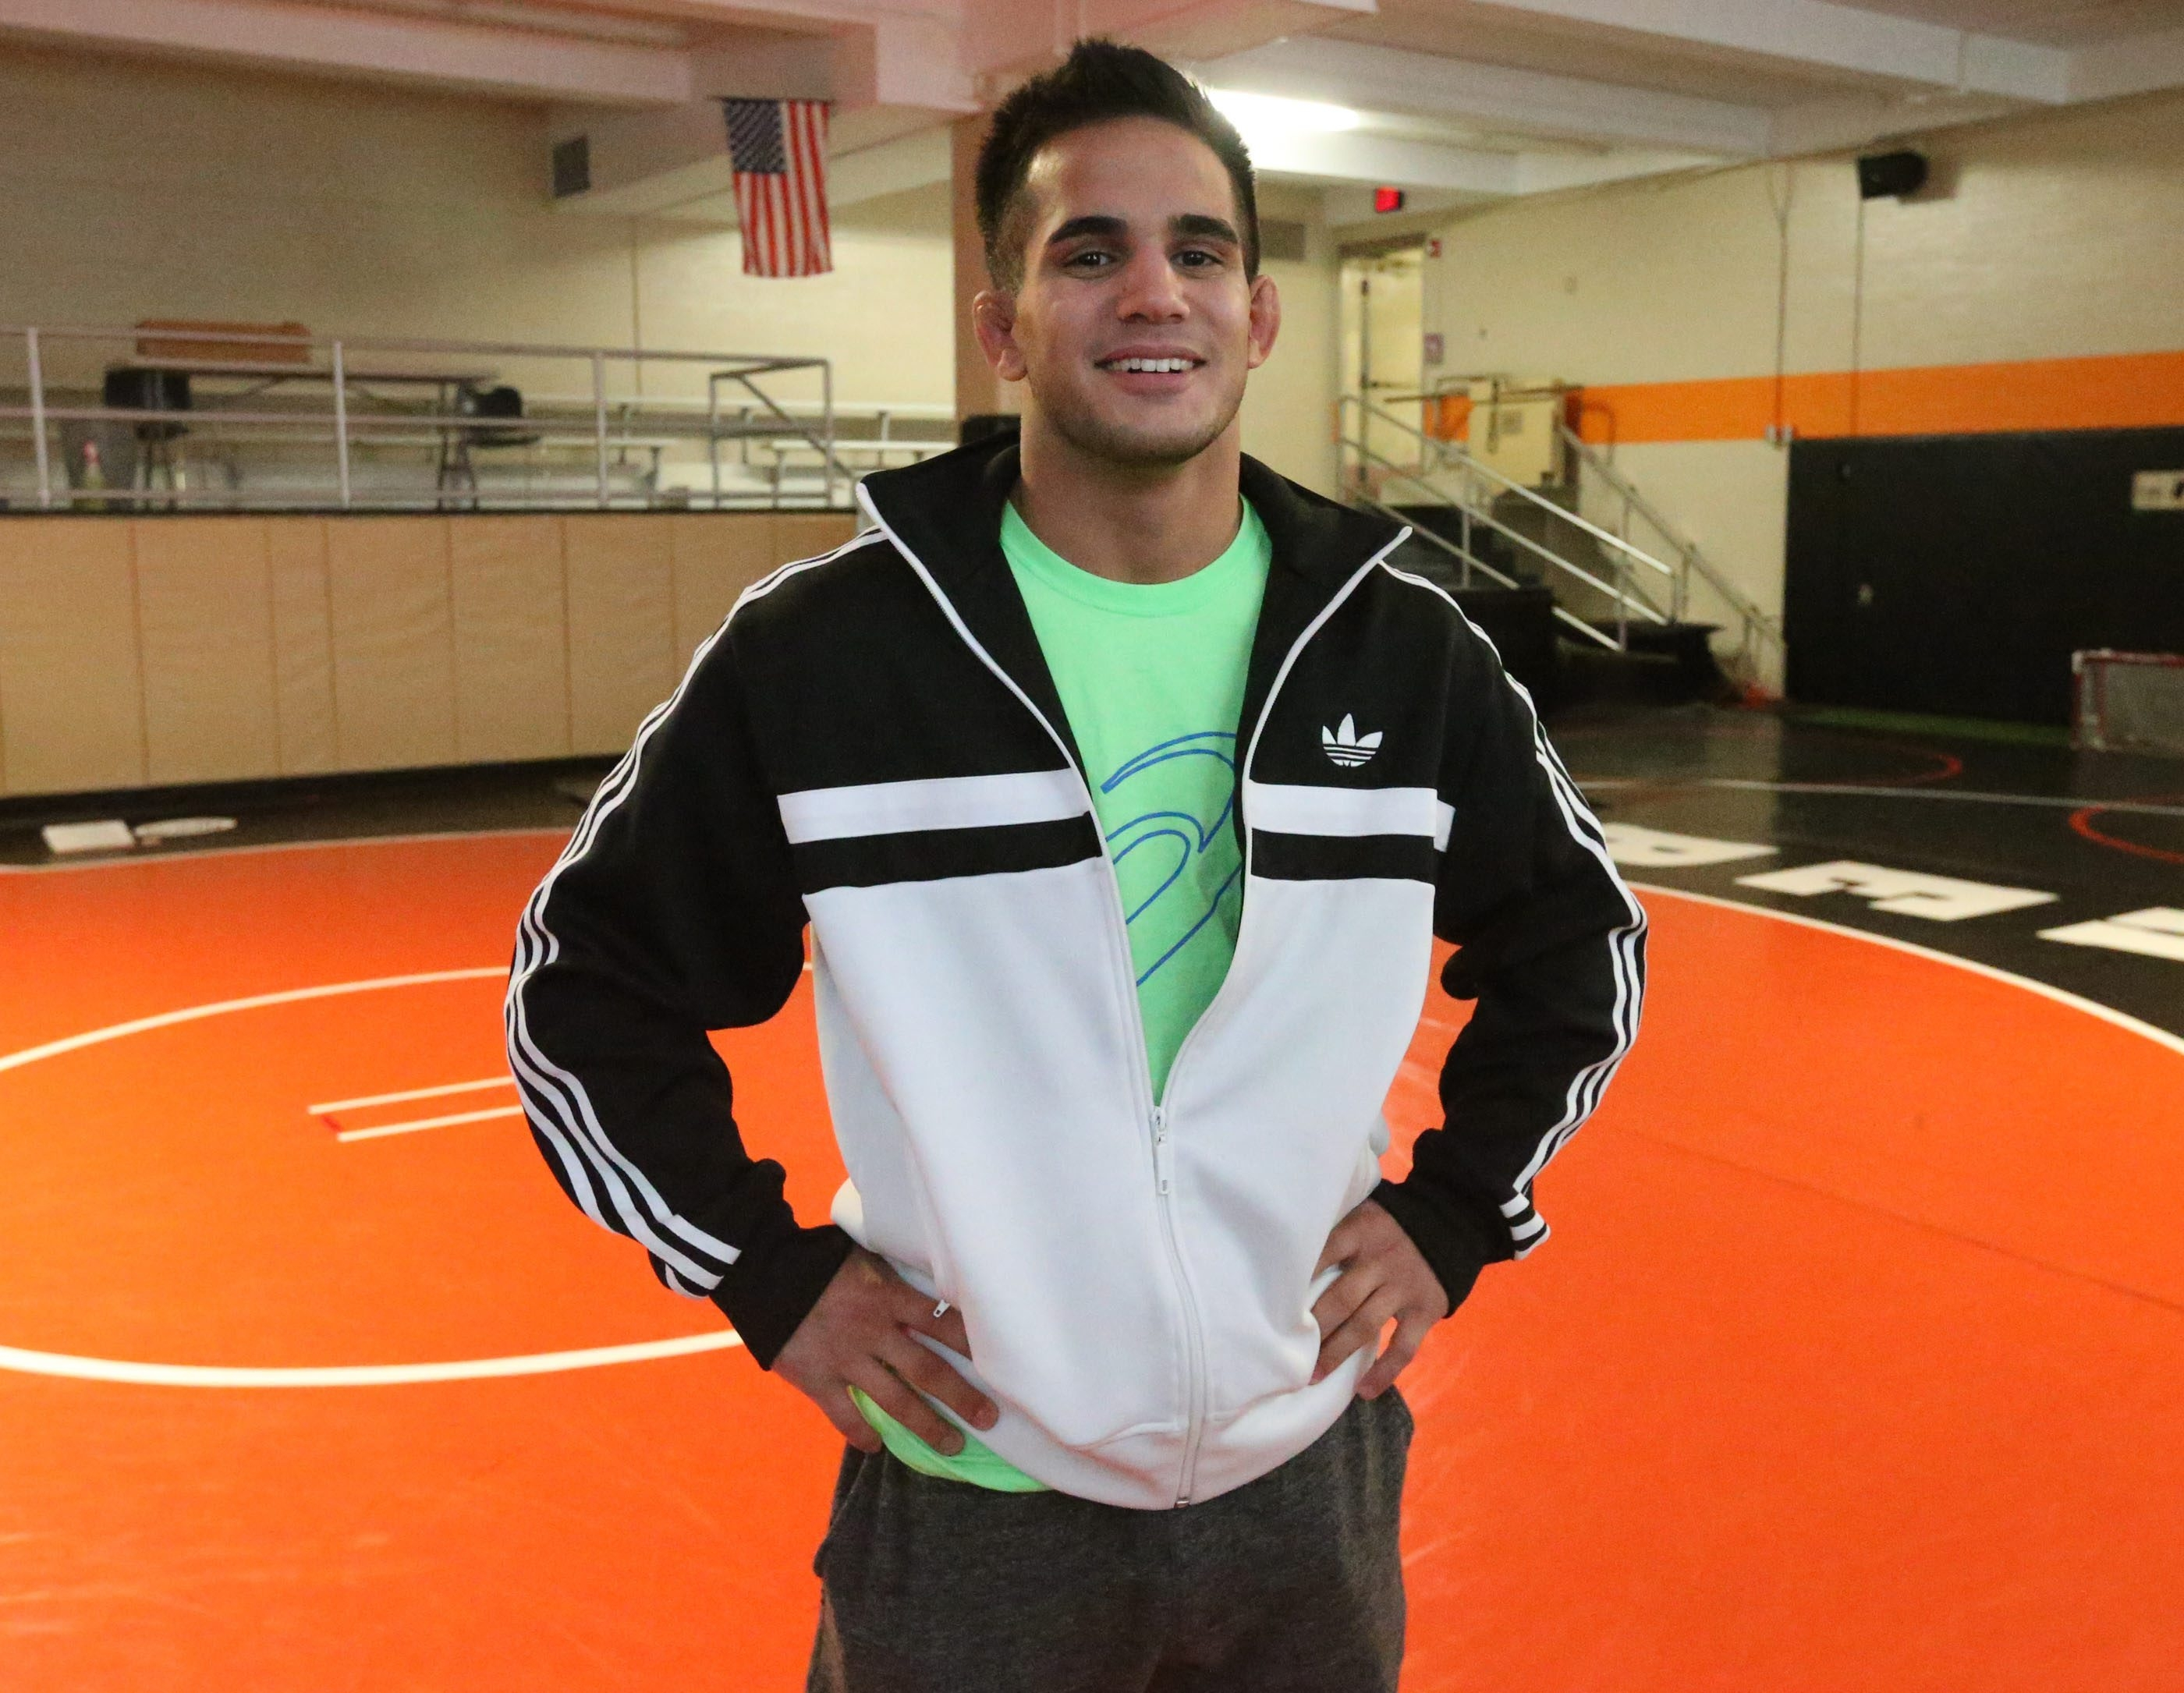 State and national champion Kellen Devlin of Amherst leads a once-a-week-practice session featuring the area's top wrestling talents in hopes of helping them turn their state-title dreams into reality.